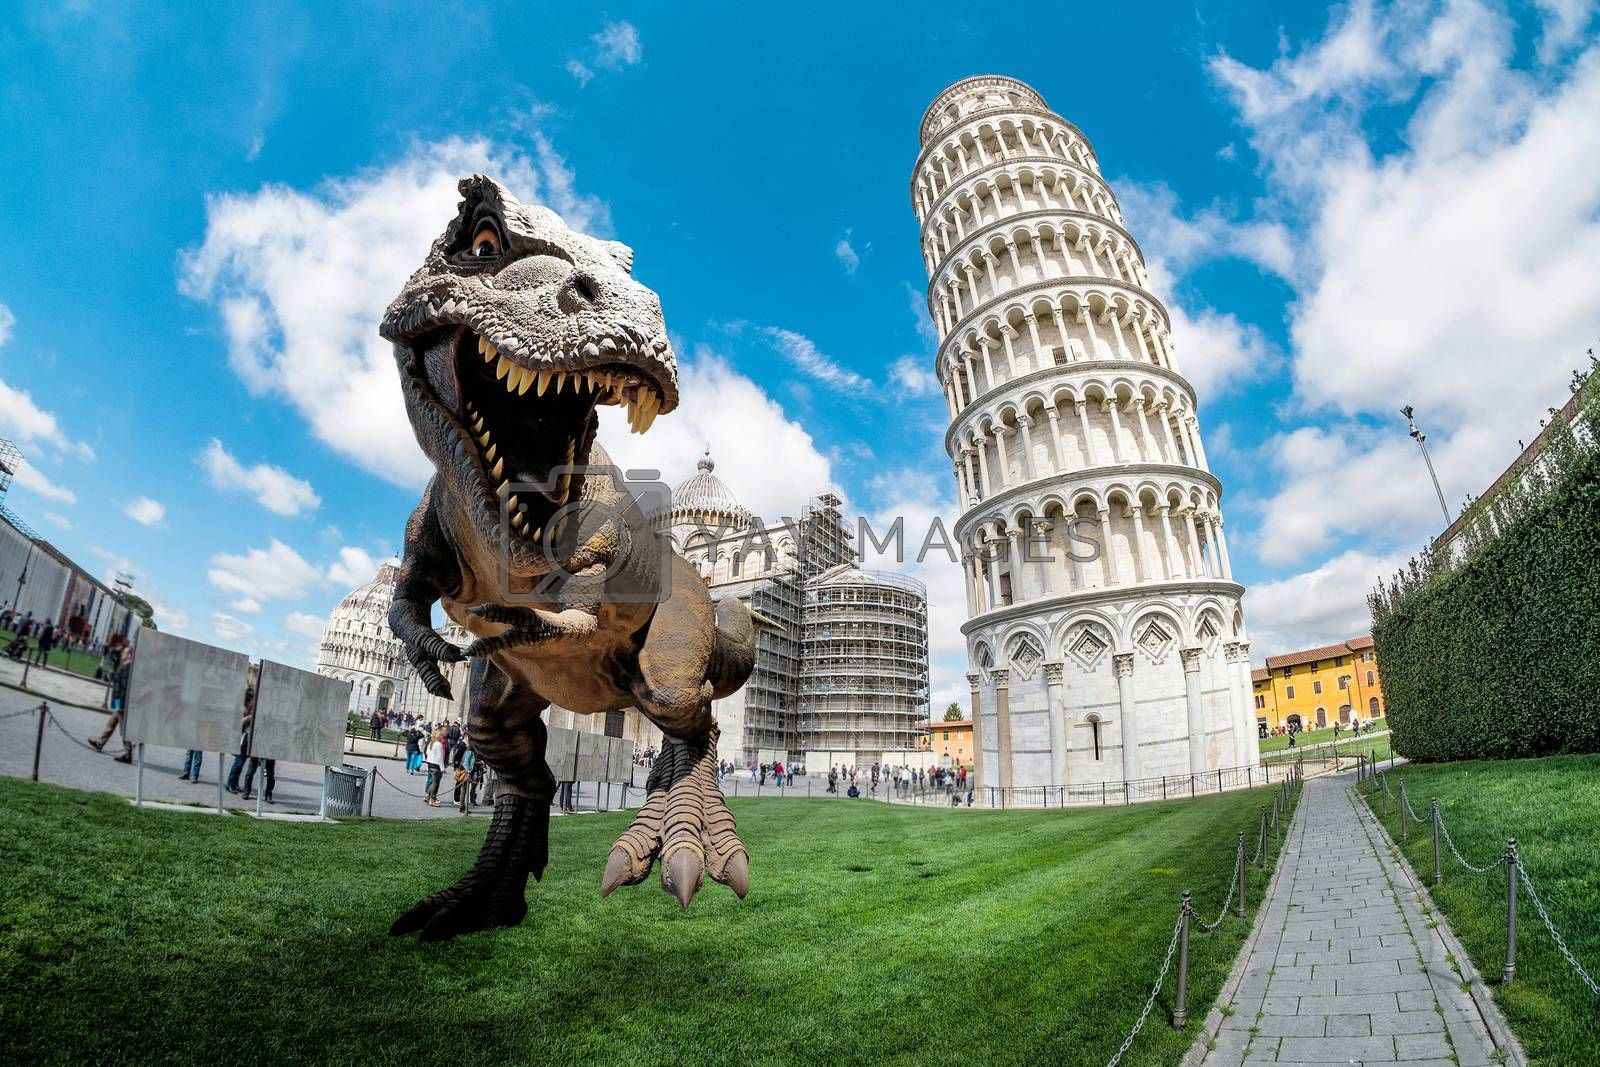 Dinosaurs model on The Leaning Tower of Pisa